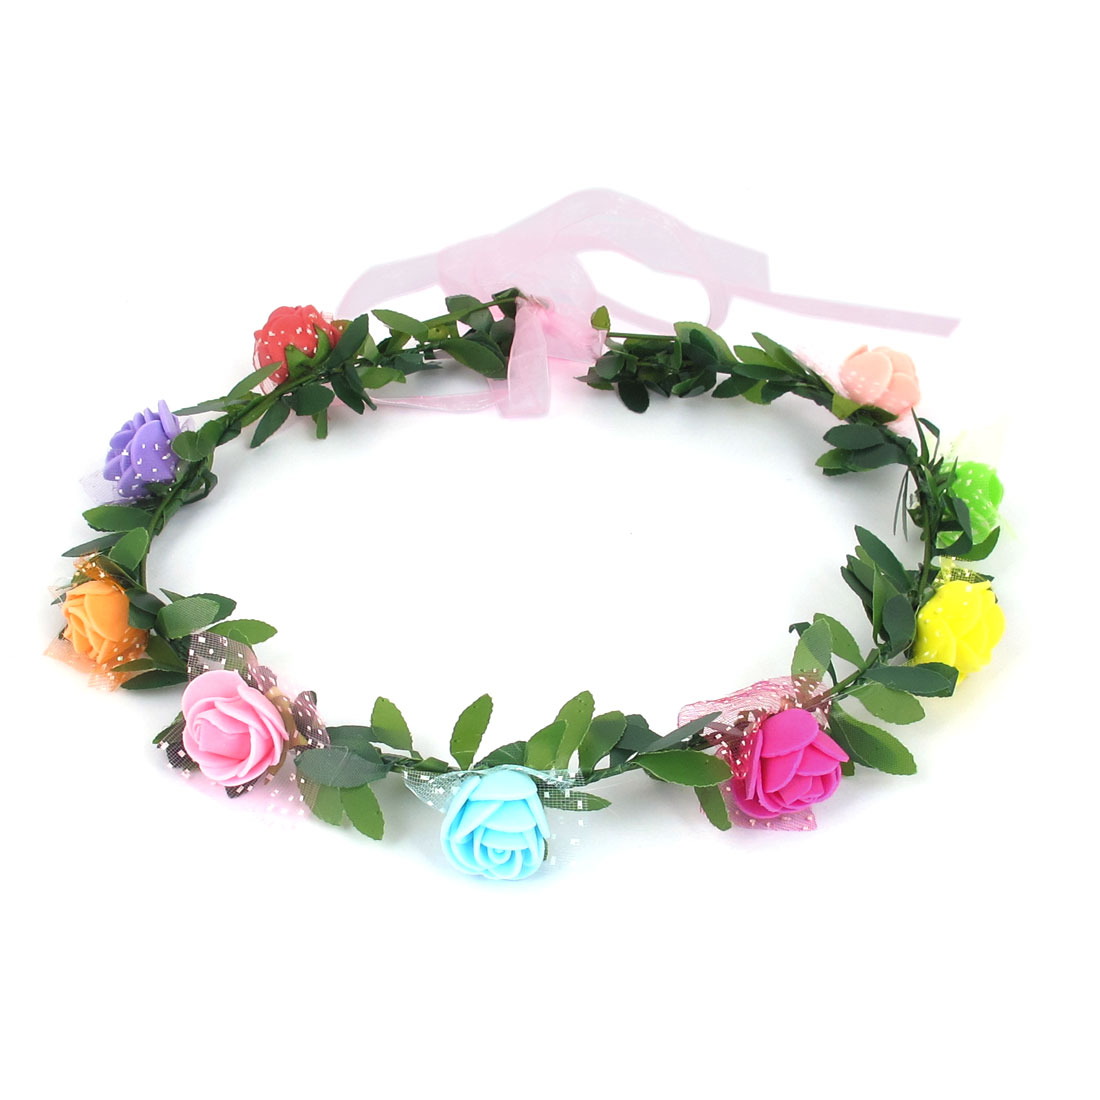 Lady Wedding Party Flower Decor Adjustable Headwear Headdress Hair Crown Wreath Multicolor